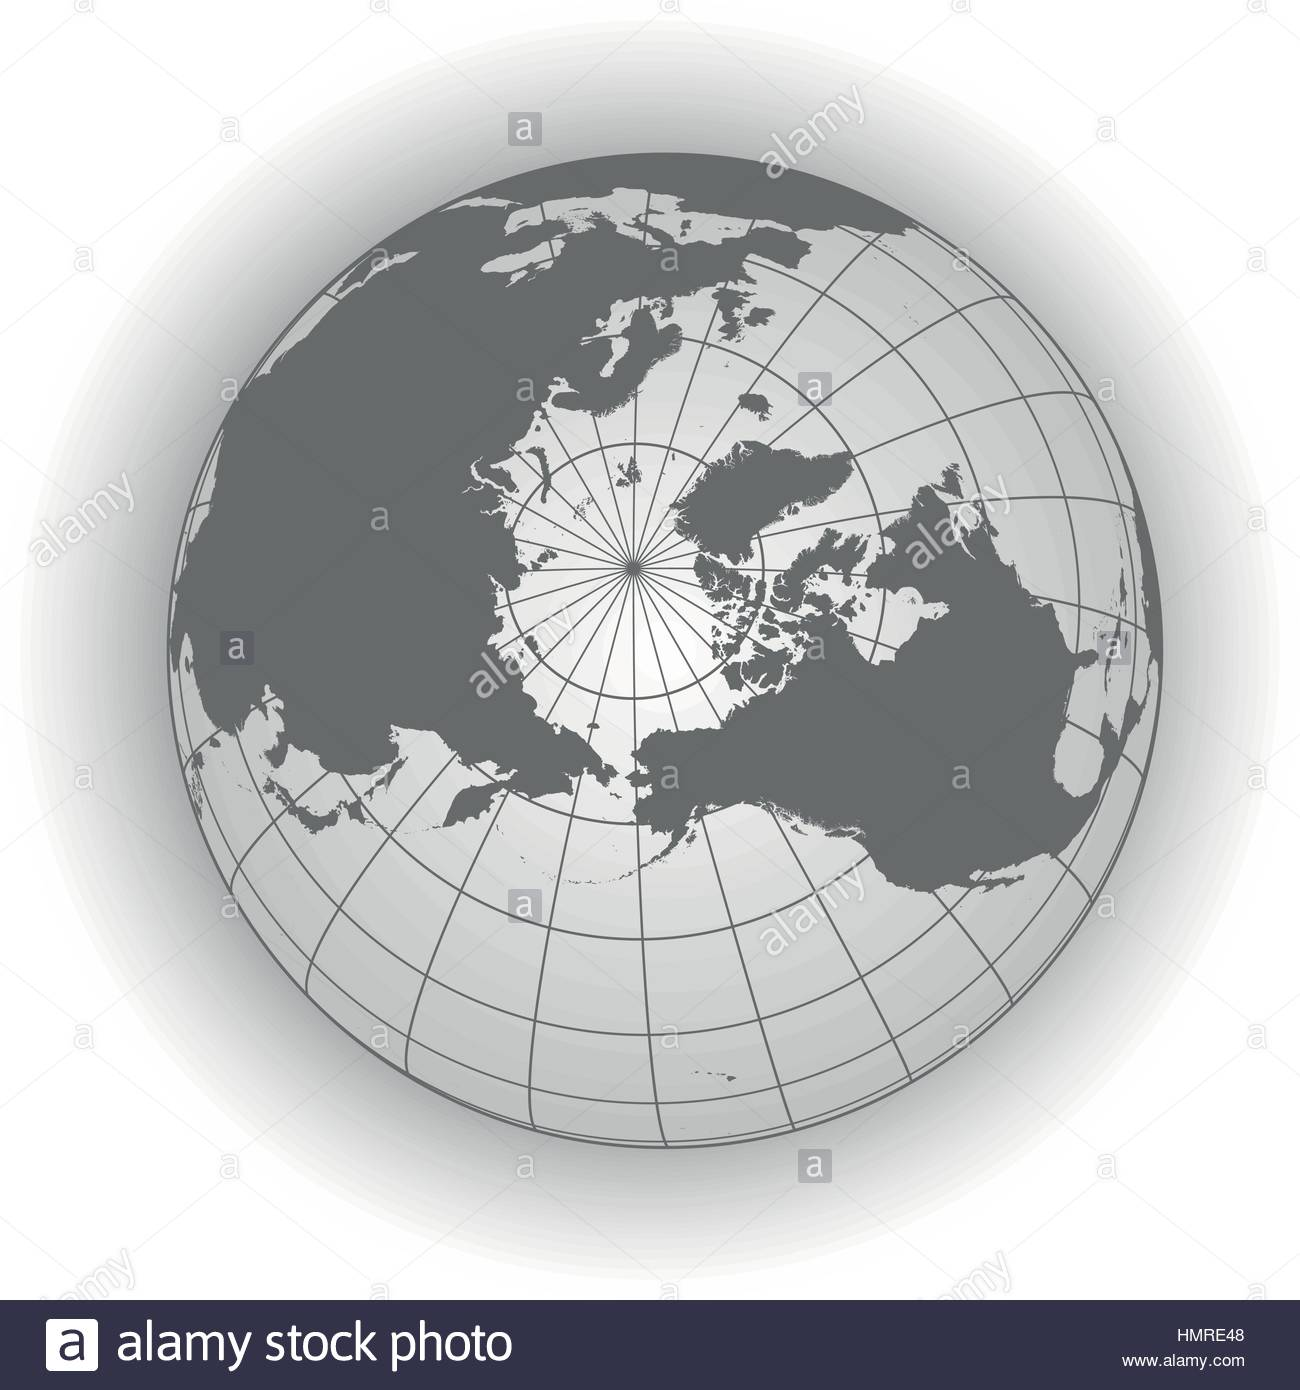 North pole map europe greenland asia america russia earth north pole map europe greenland asia america russia earth globe worldmap elements of this image furnished by nasa gumiabroncs Images